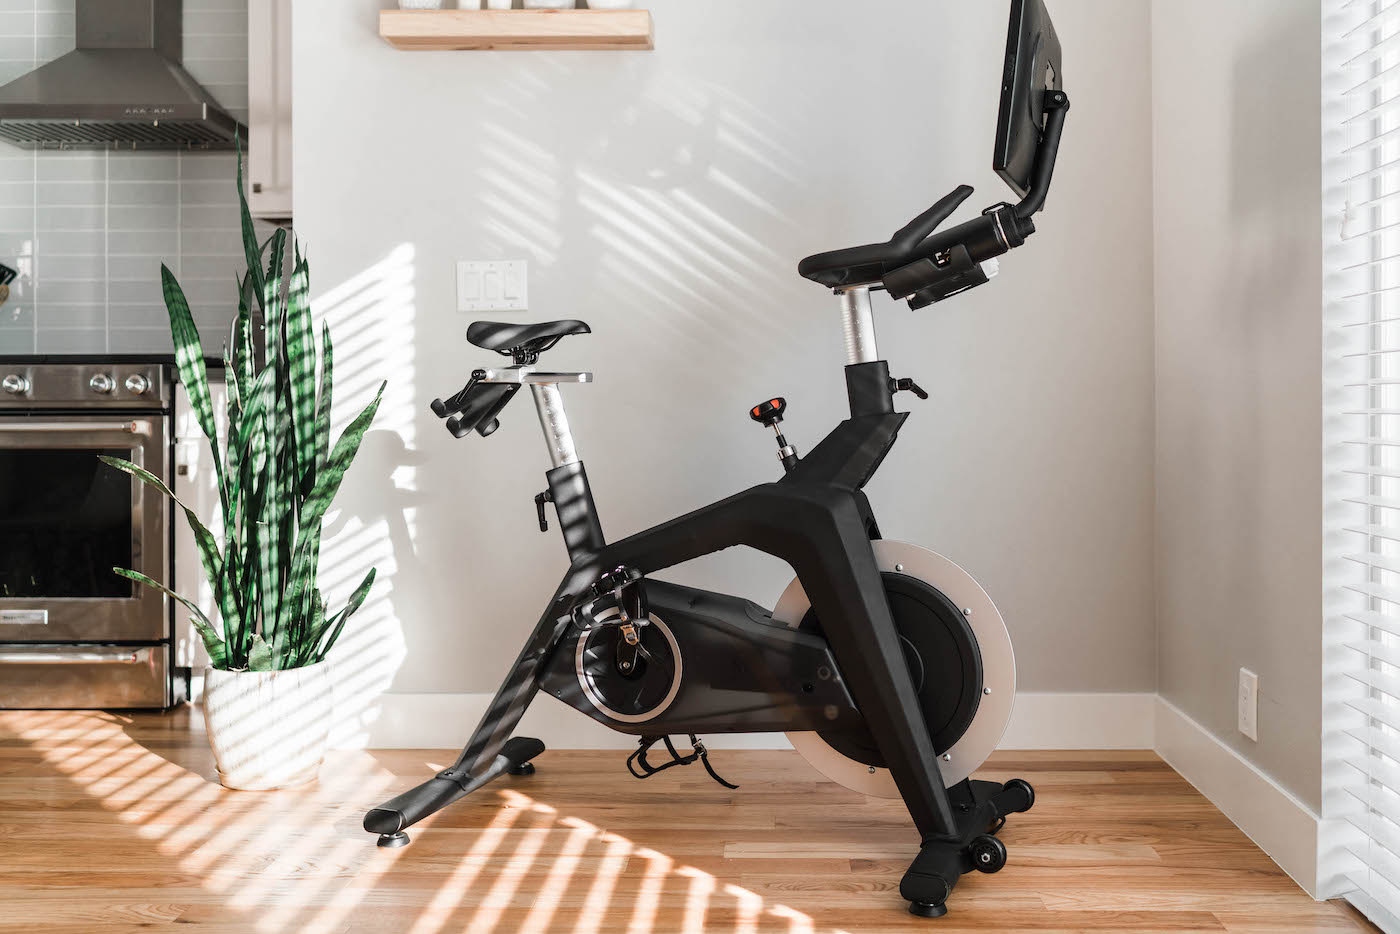 Thumbnail for I Never Thought I'd Be a Fan of at-Home Spin, but the Stryde Bike Changed My Mind